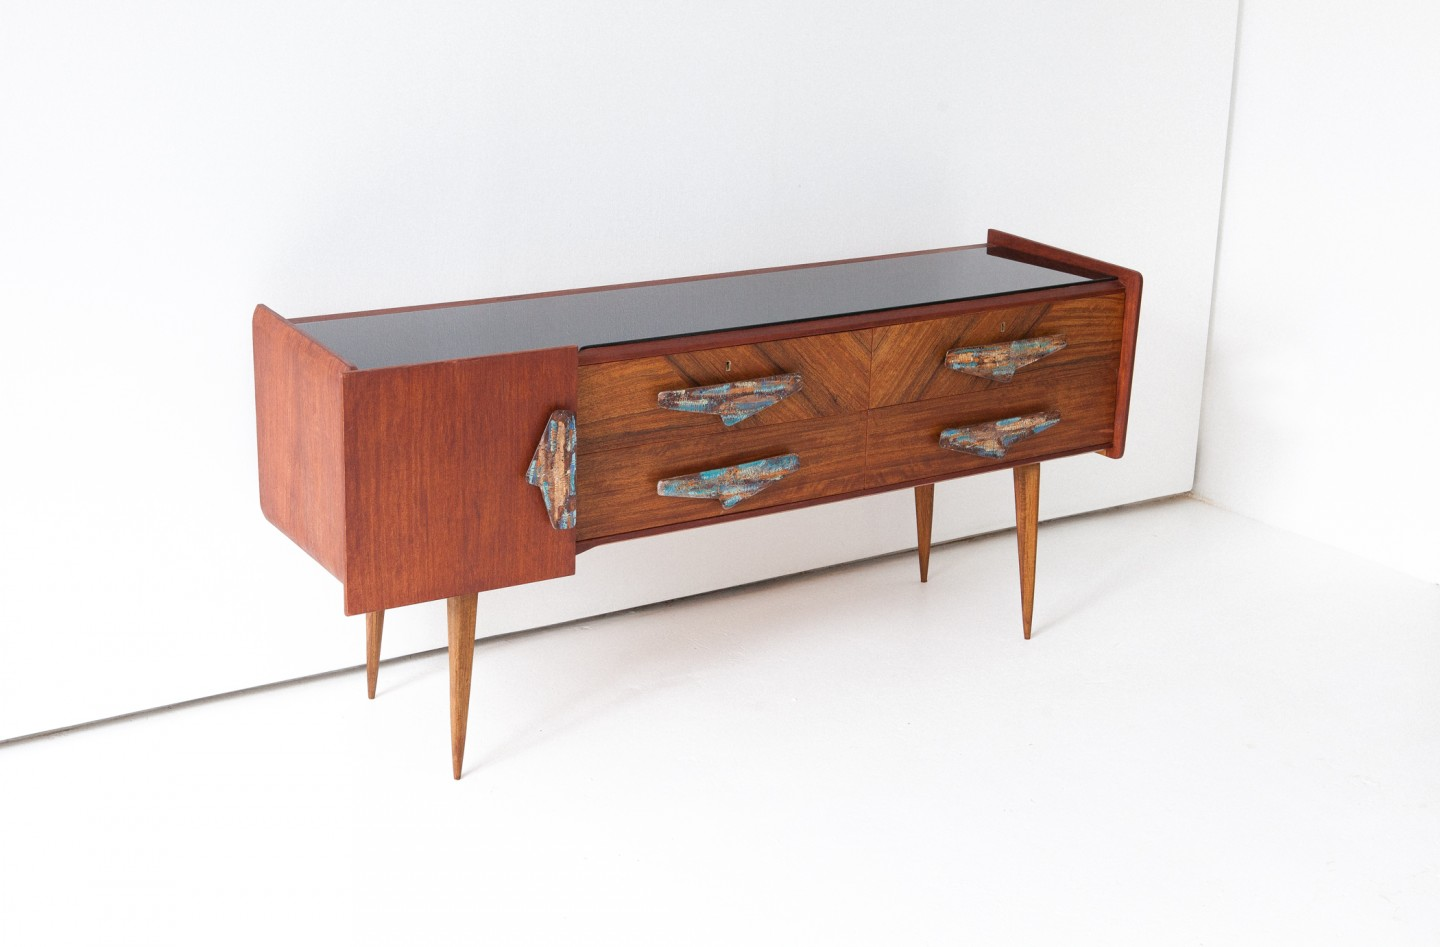 Rare italian  mahogany and teak sideboard ,1950s  ST110 -Not Available